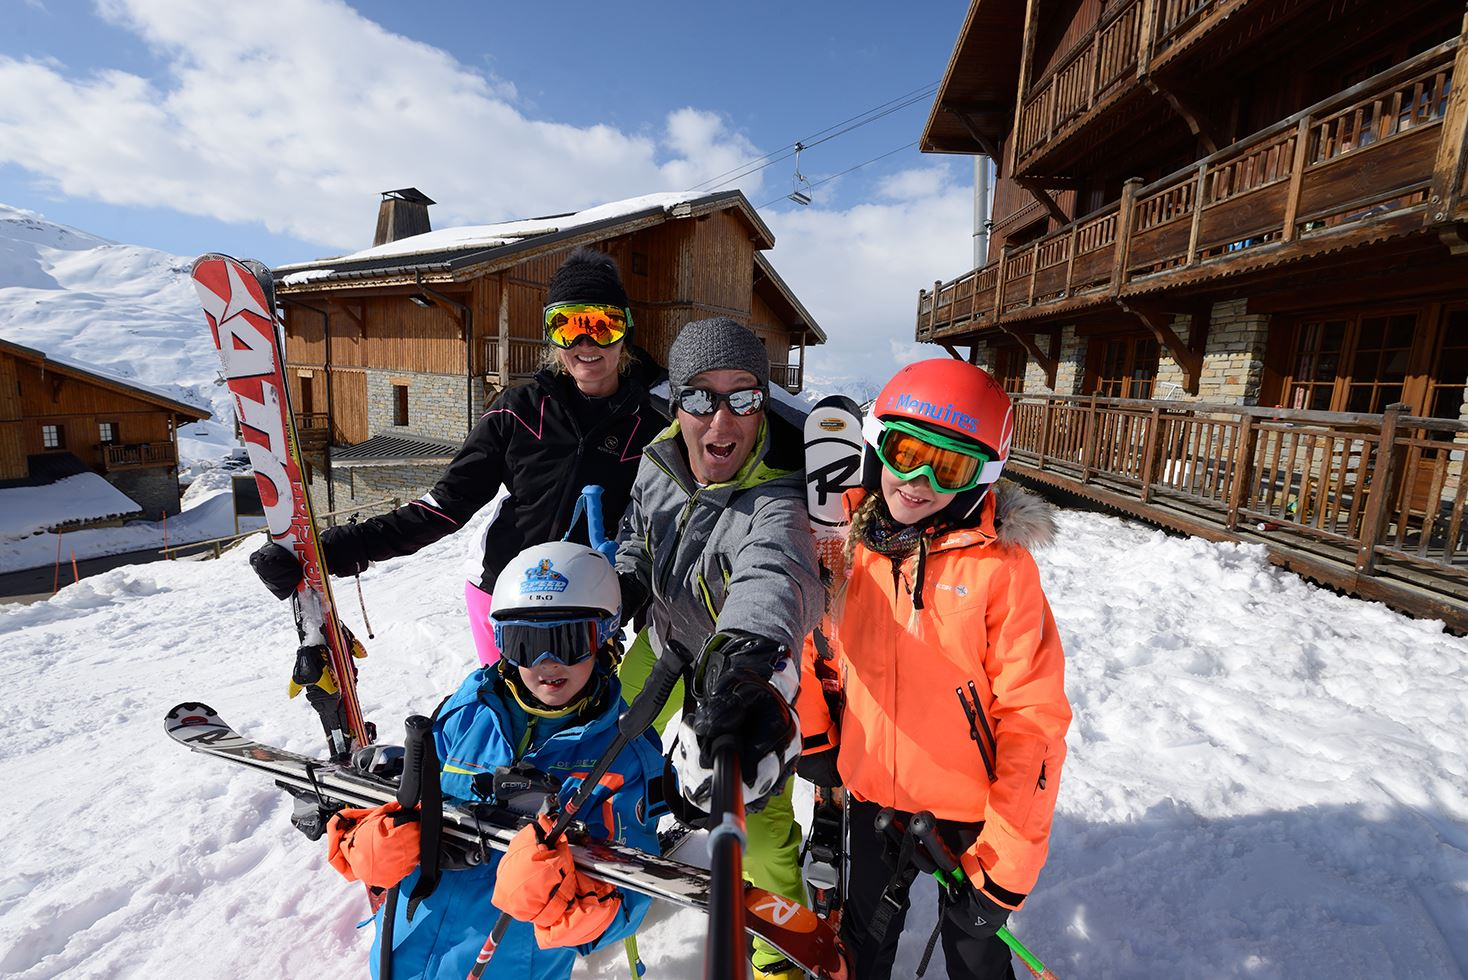 Family Ski, Ride and Fun